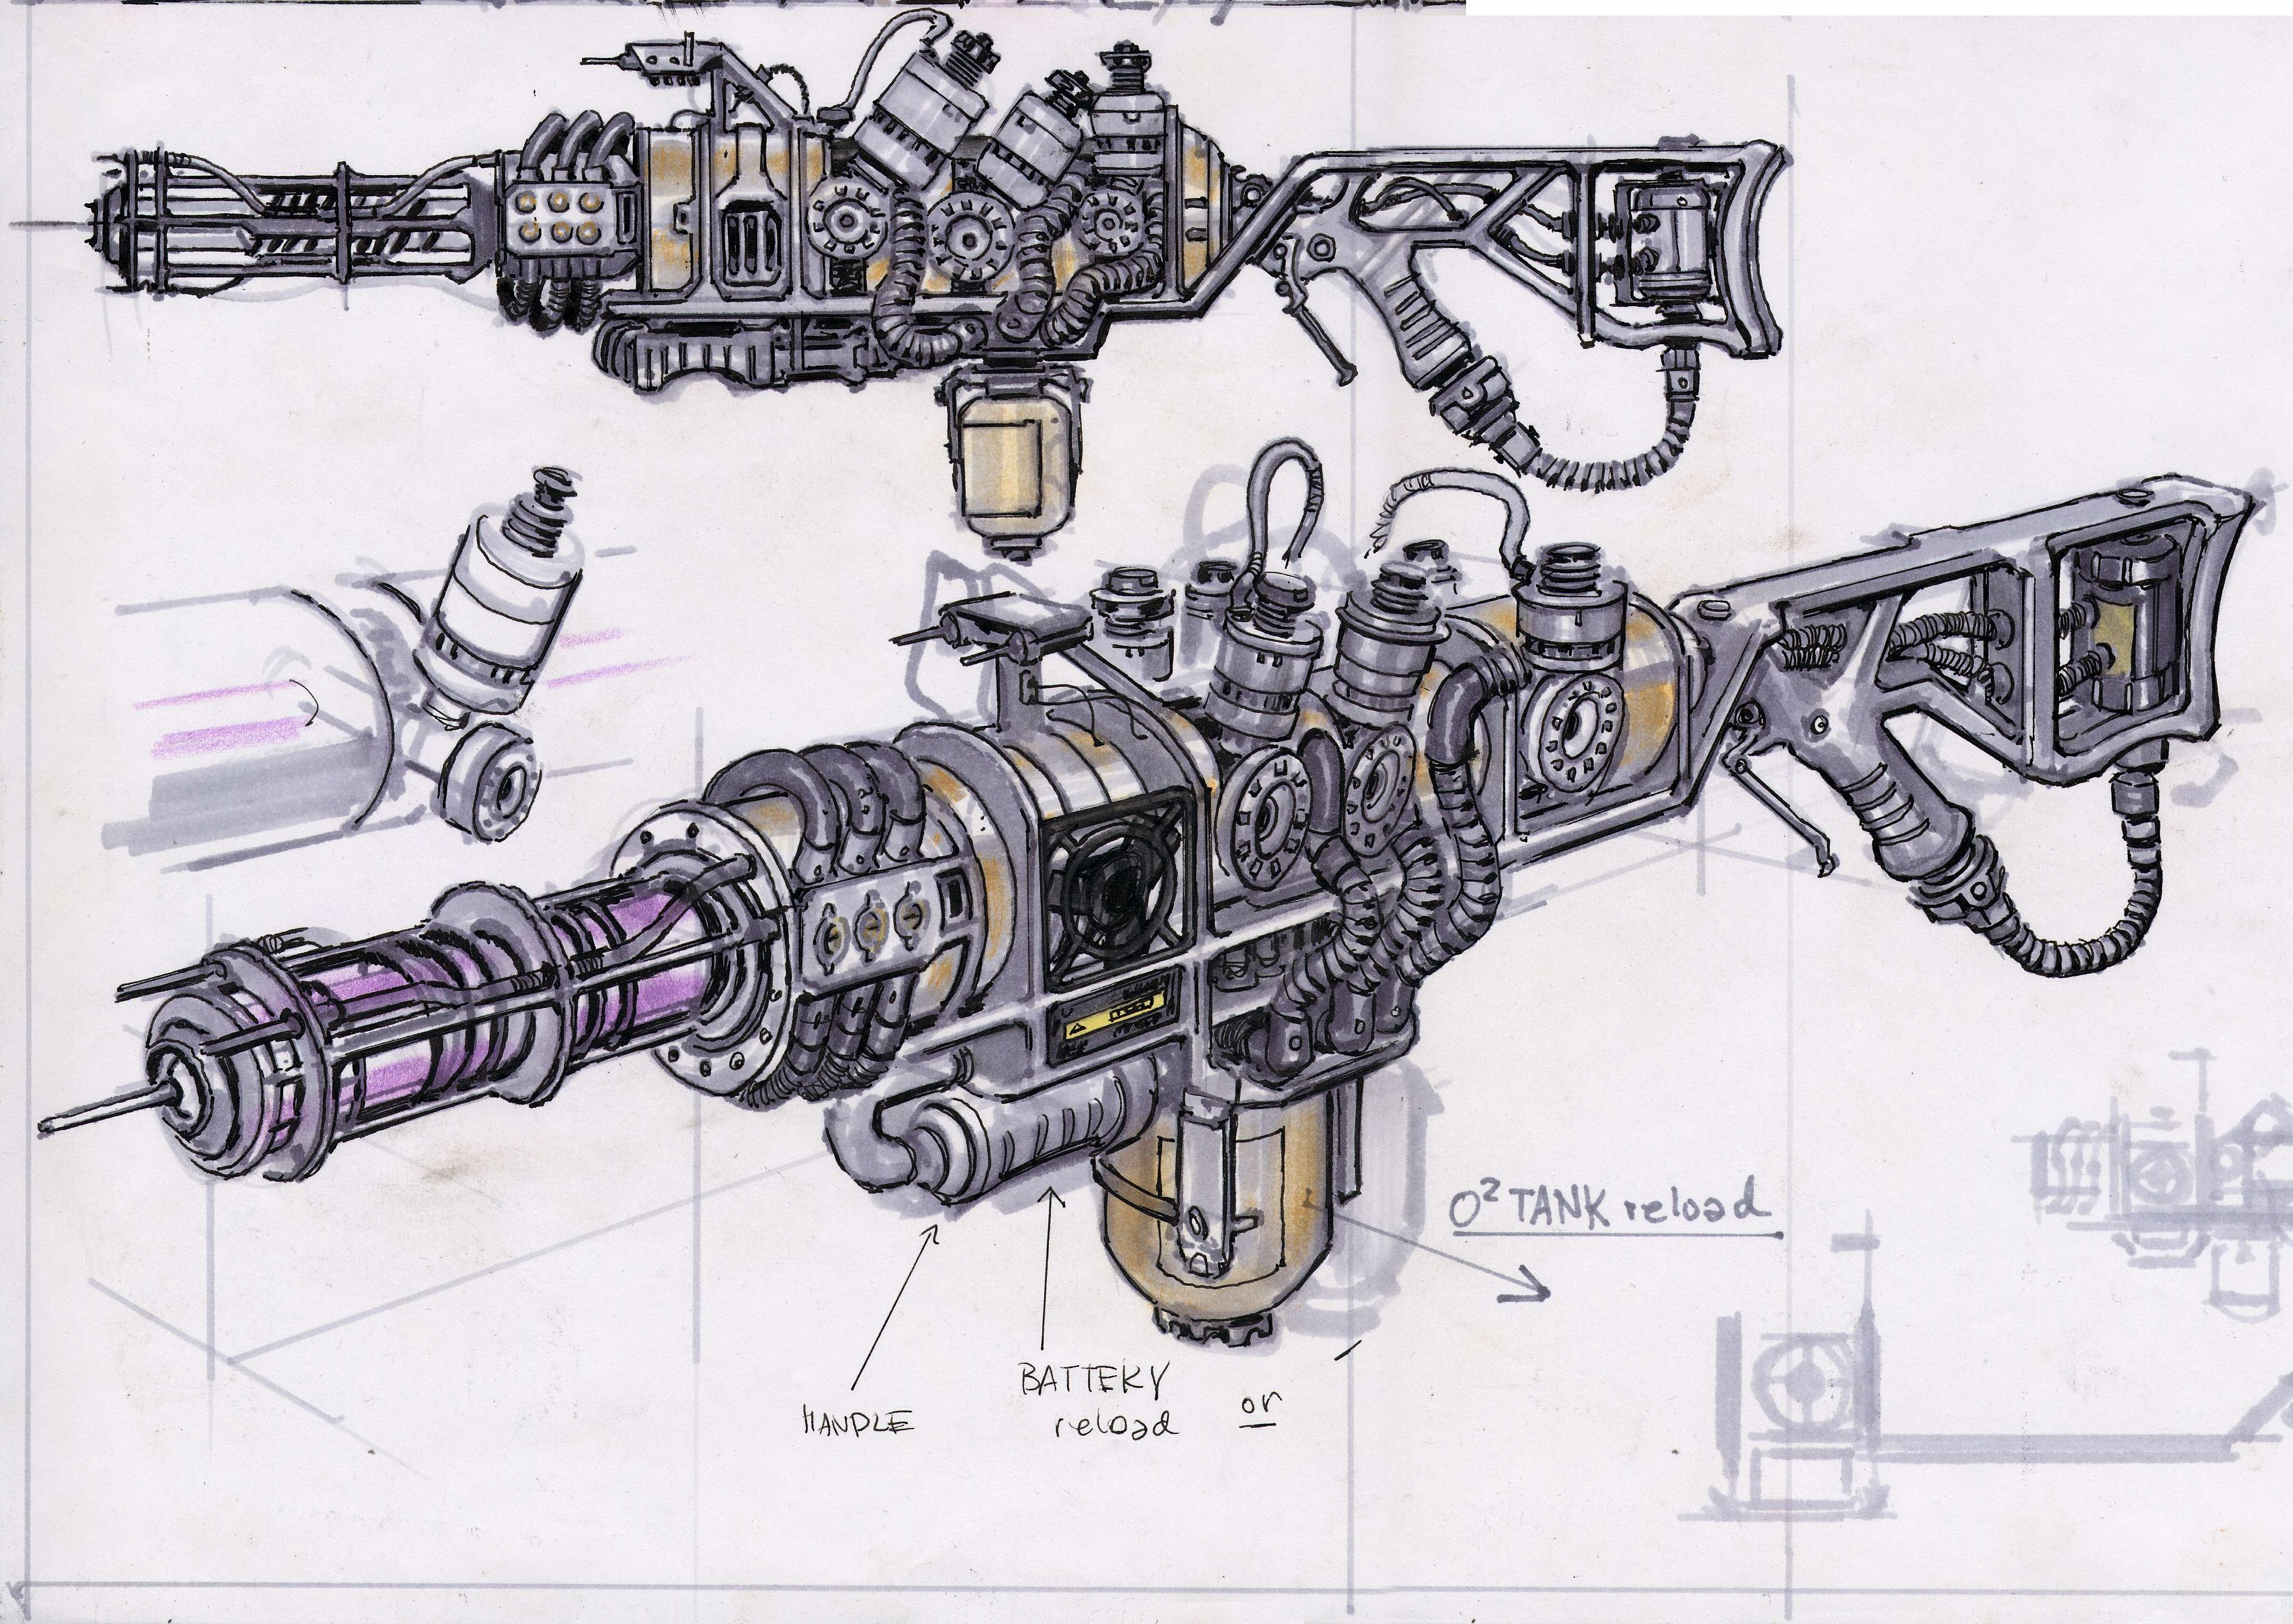 Schematics Plasma Rifle | Fallout | Fallout 3, Fallout concept art on